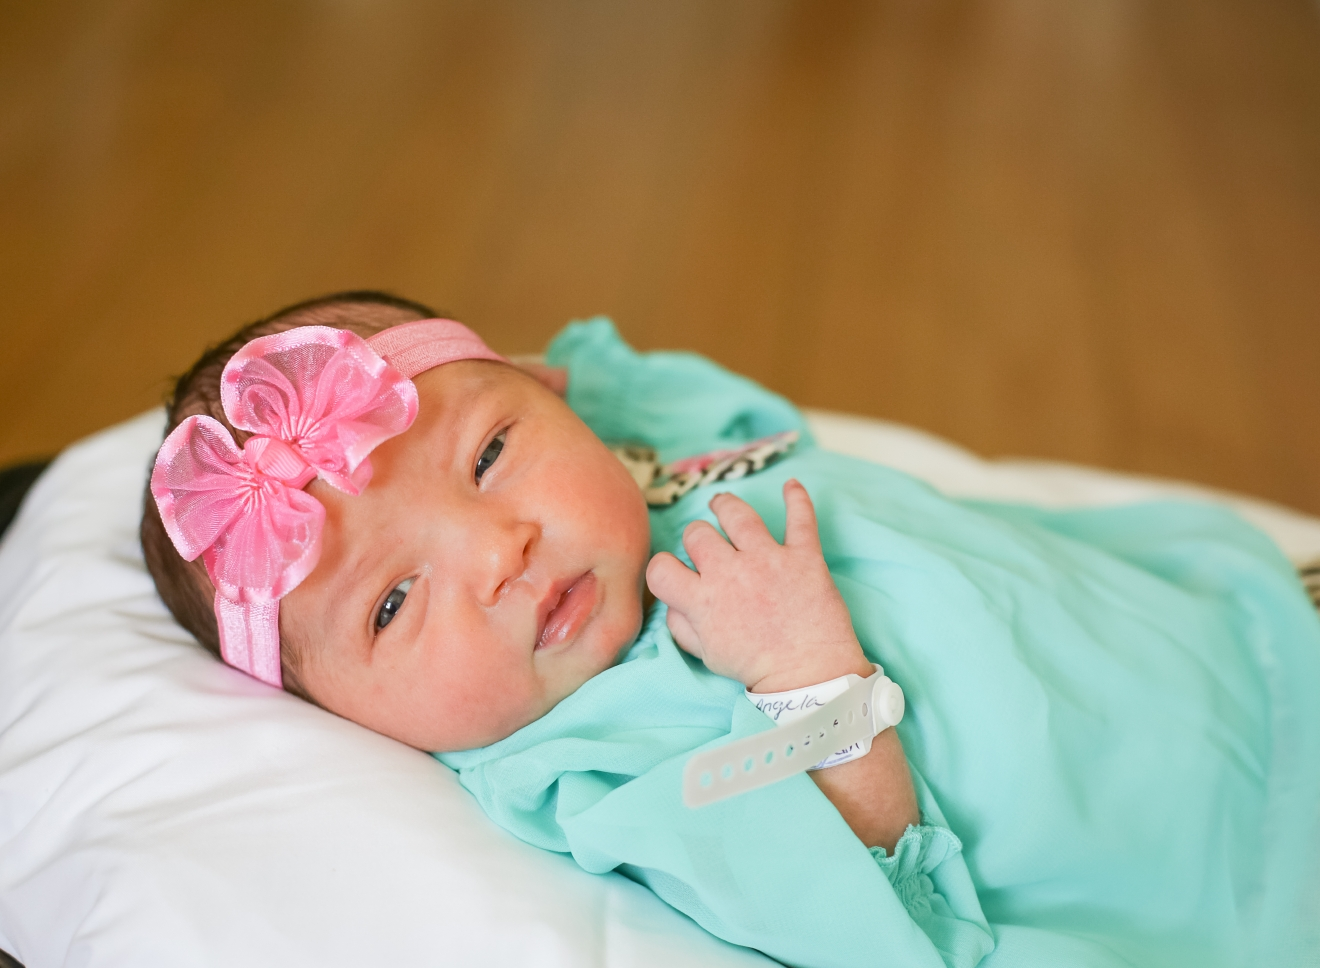 Arabella Photo courtesy of Palms West Hospital and Bella Baby Photography